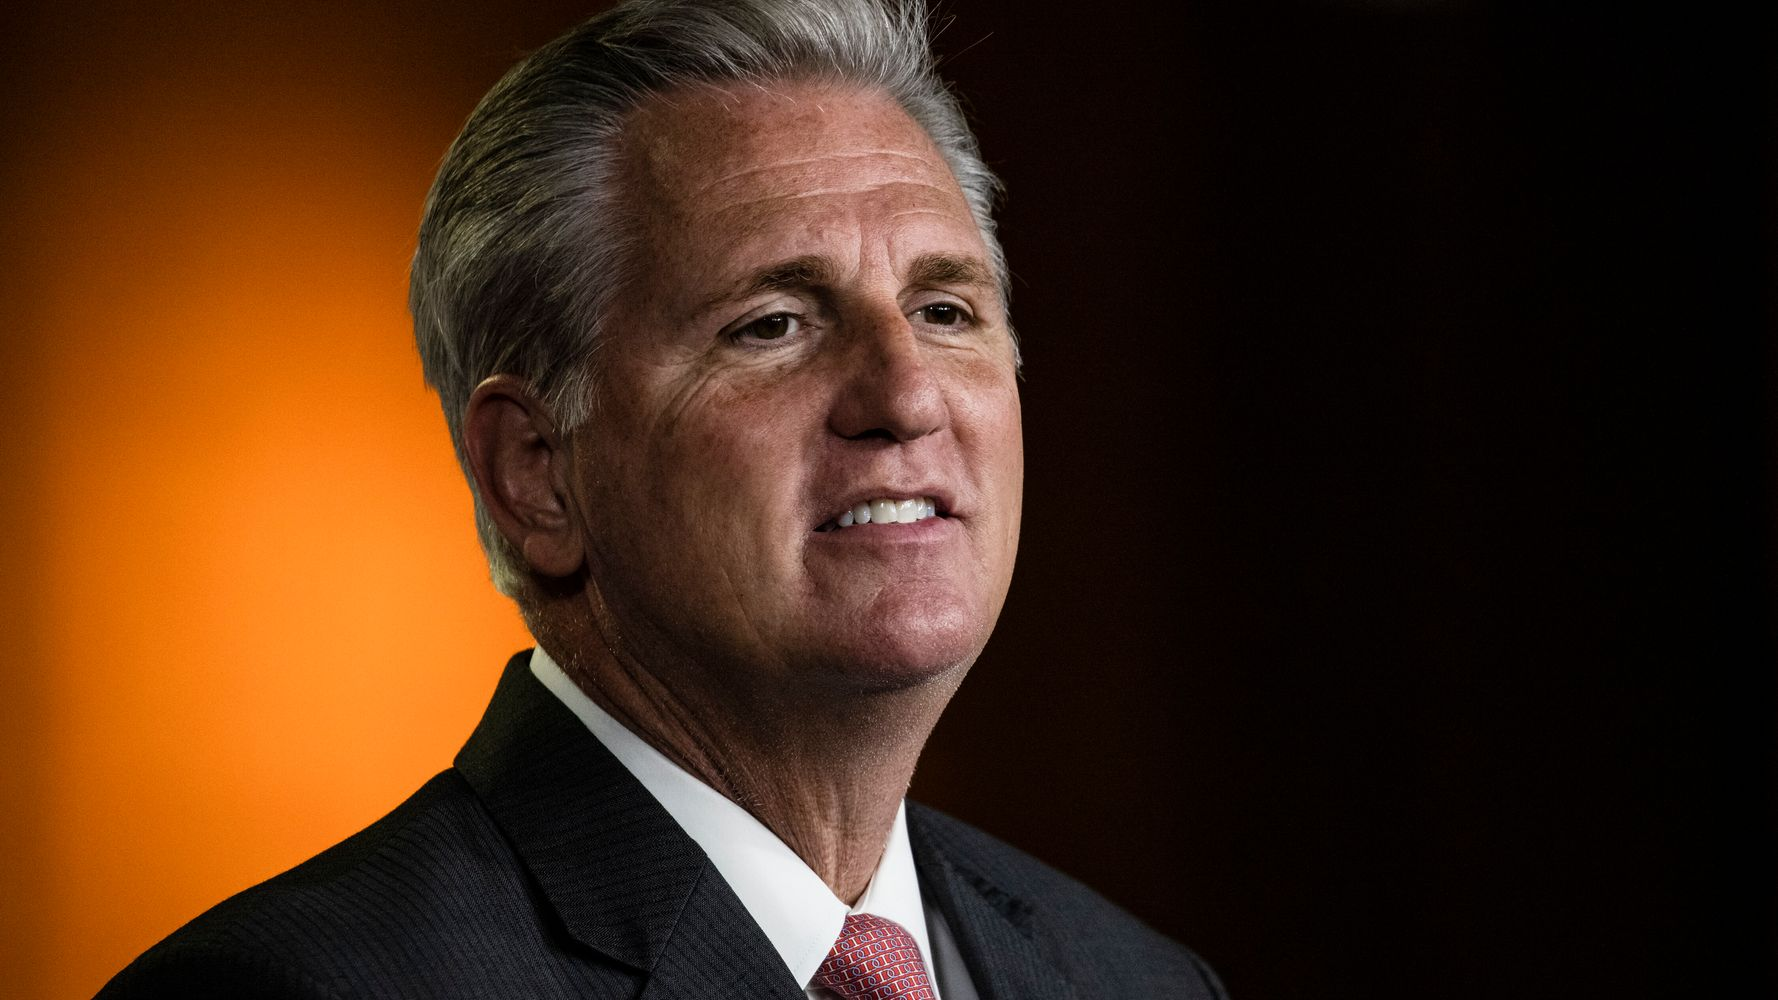 Kevin McCarthy Refuses To Recognize Biden Won, Continues To Undermine Democracy